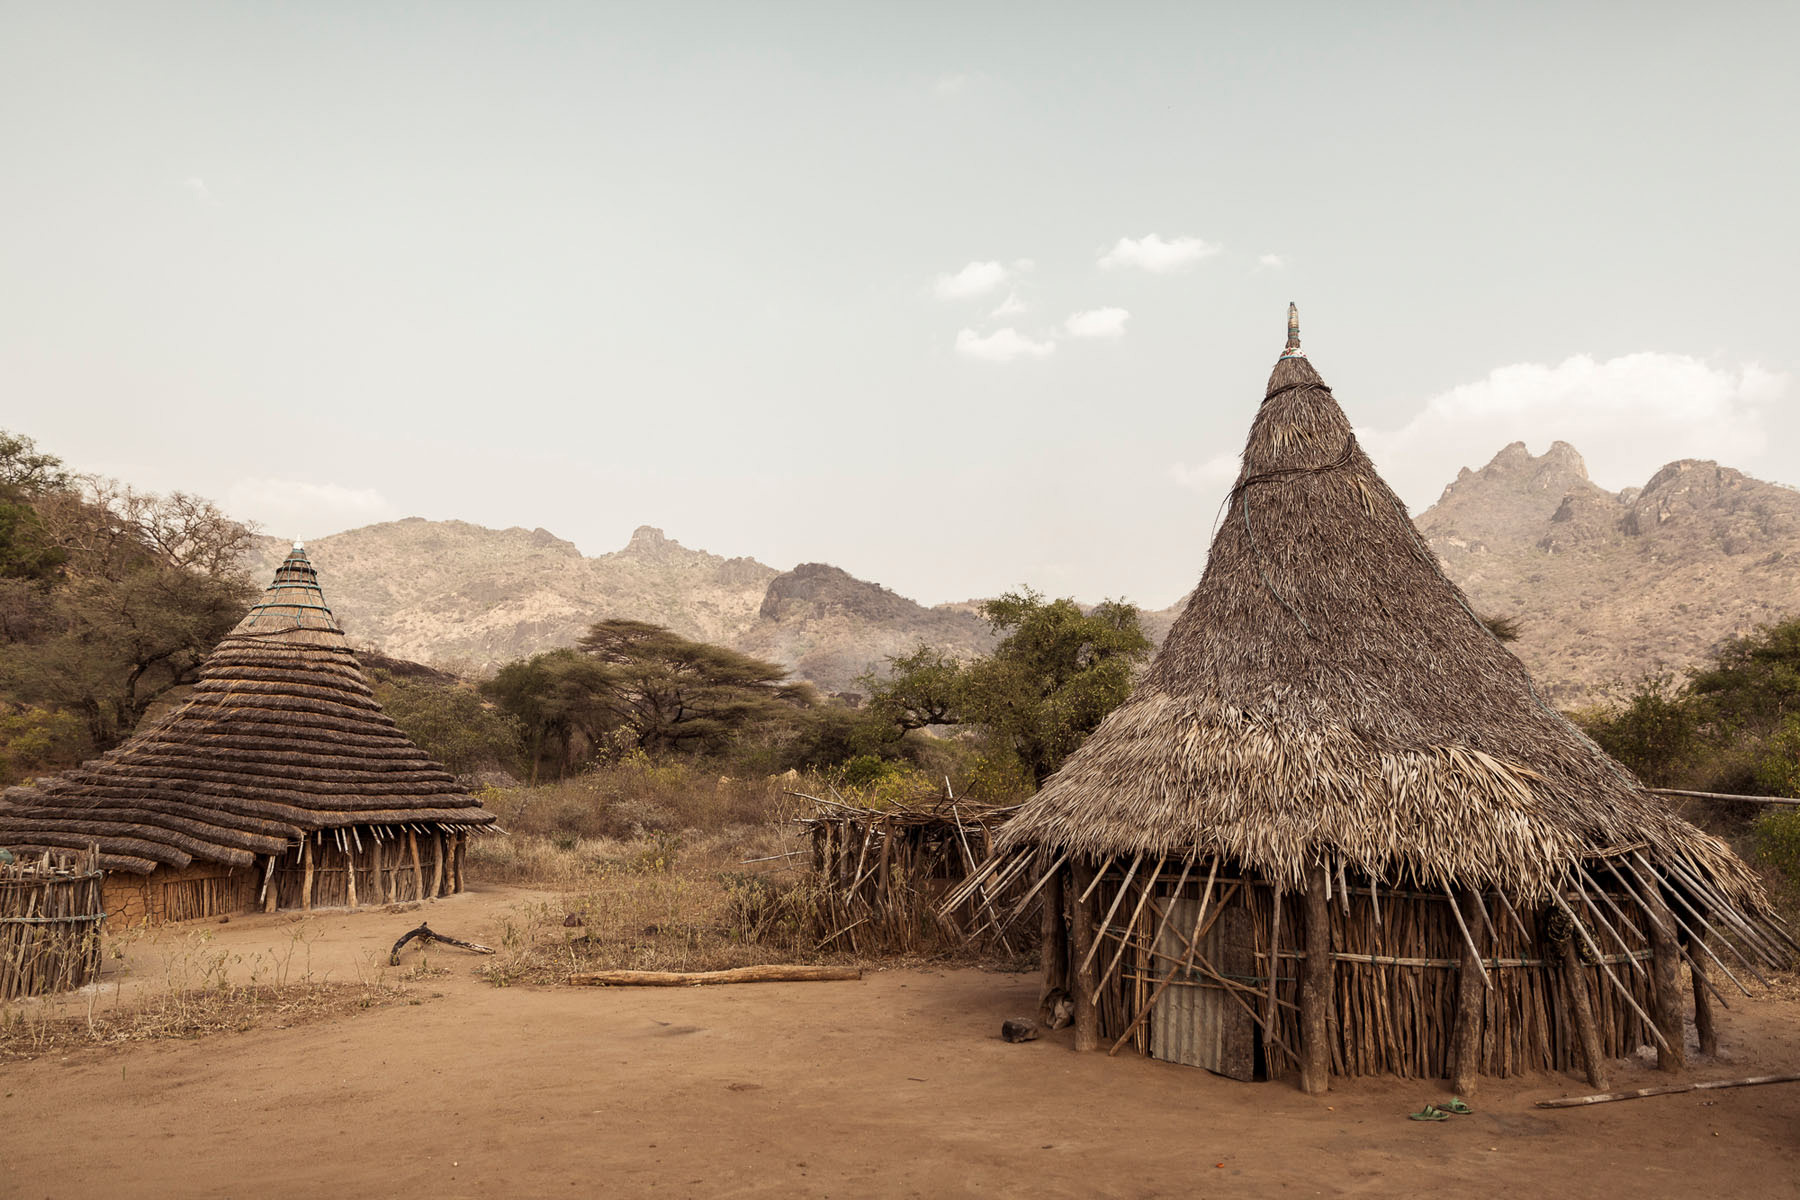 Boya Hills is a rugged and hilly terrain with rich savanna, high grasslands and scrub bushes. The Boya live in small settlements, with the main town being Kimatong © Joe Buergi